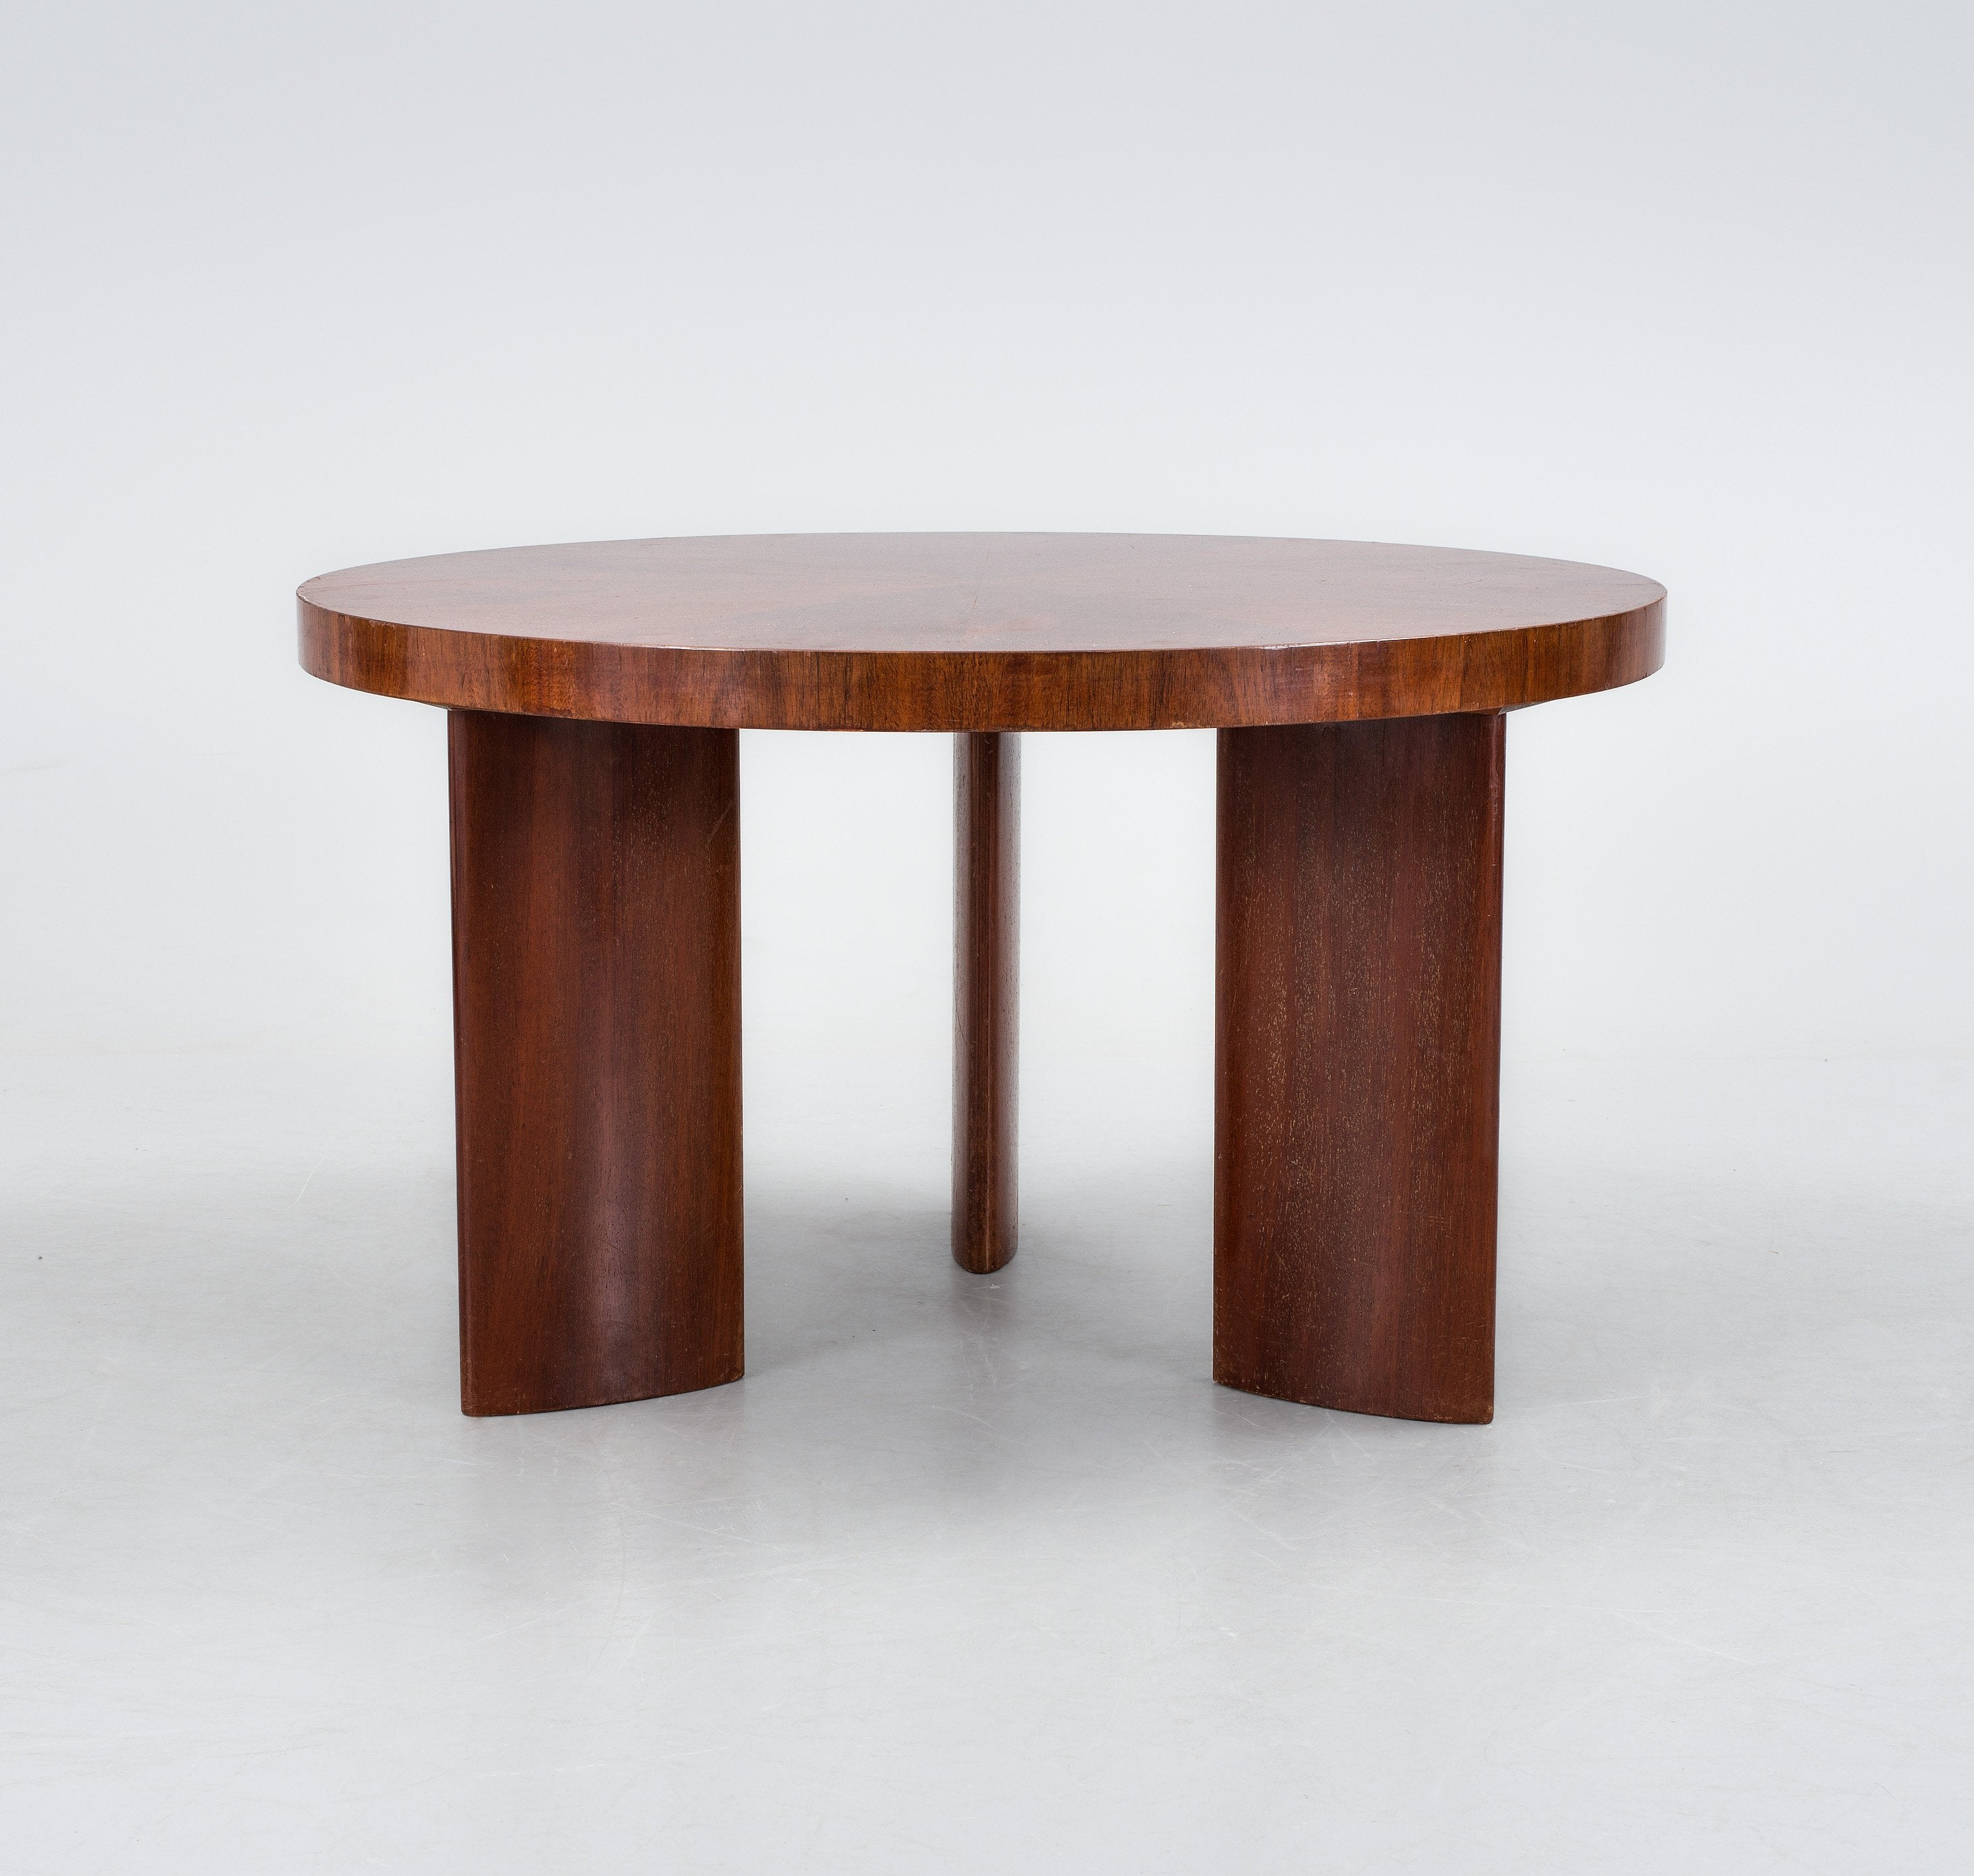 Swedish Modernism Coffee Table, circa 1920s